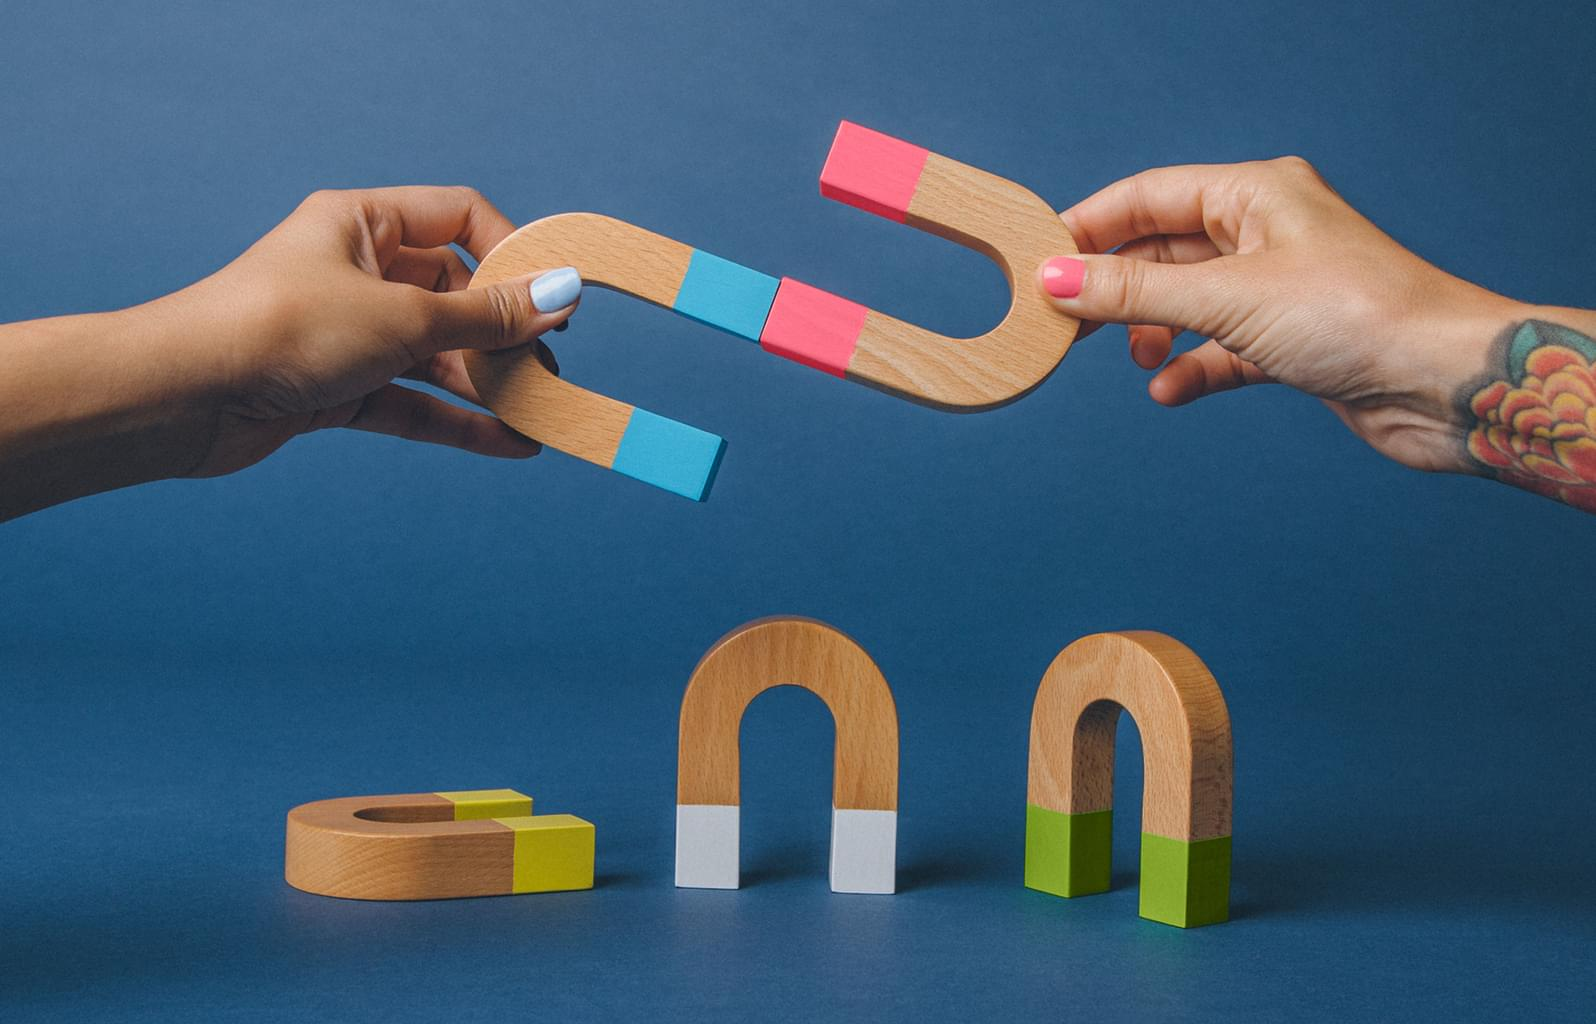 Hands and U-shaped magnets coming together